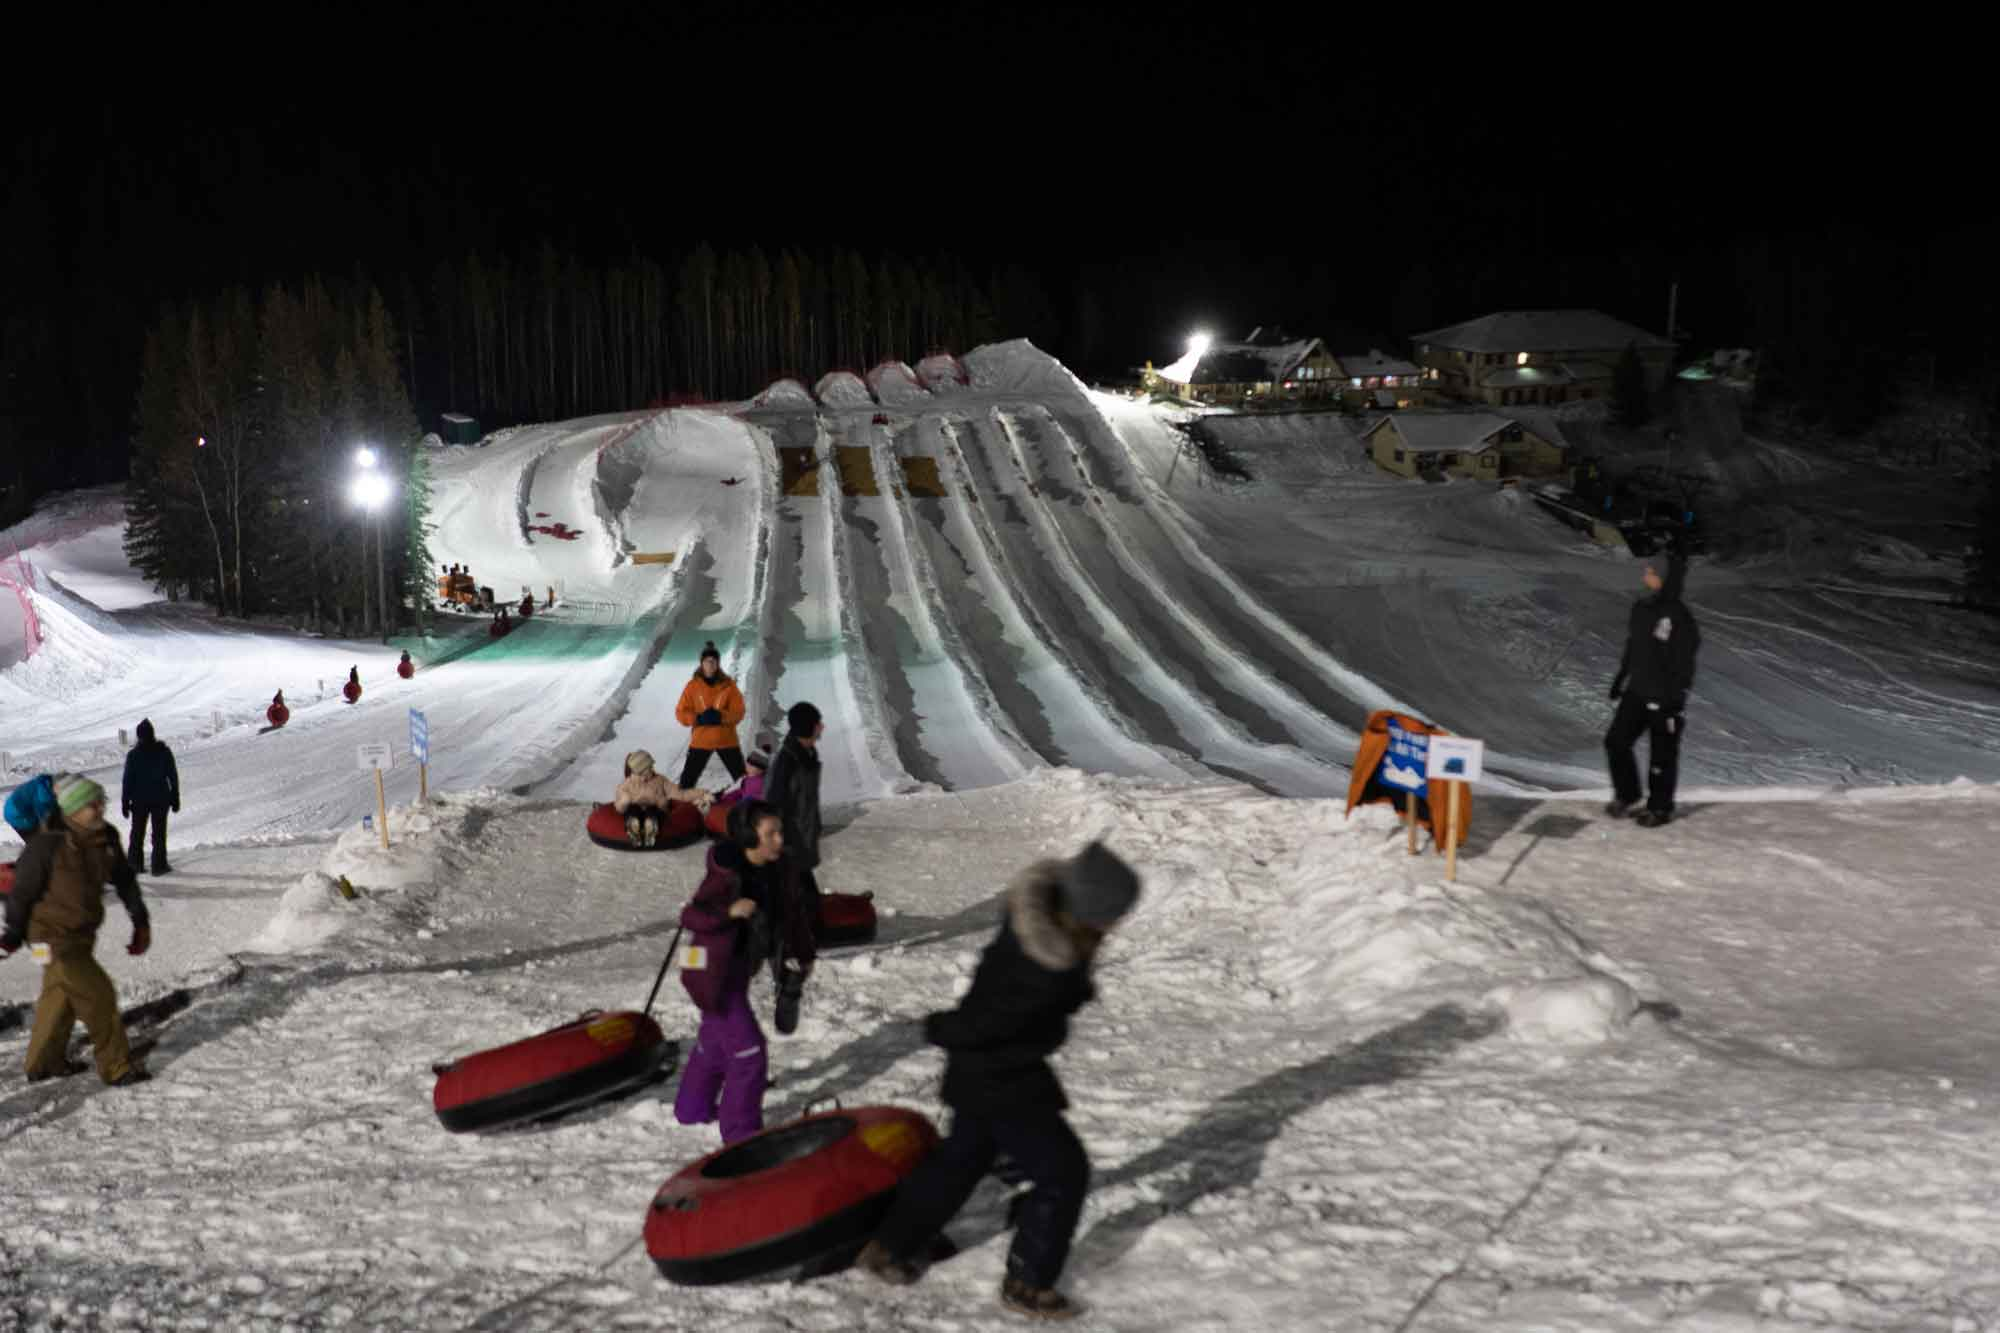 Nighttime Outdoor Adventures Night Tubing at Mount Norquay